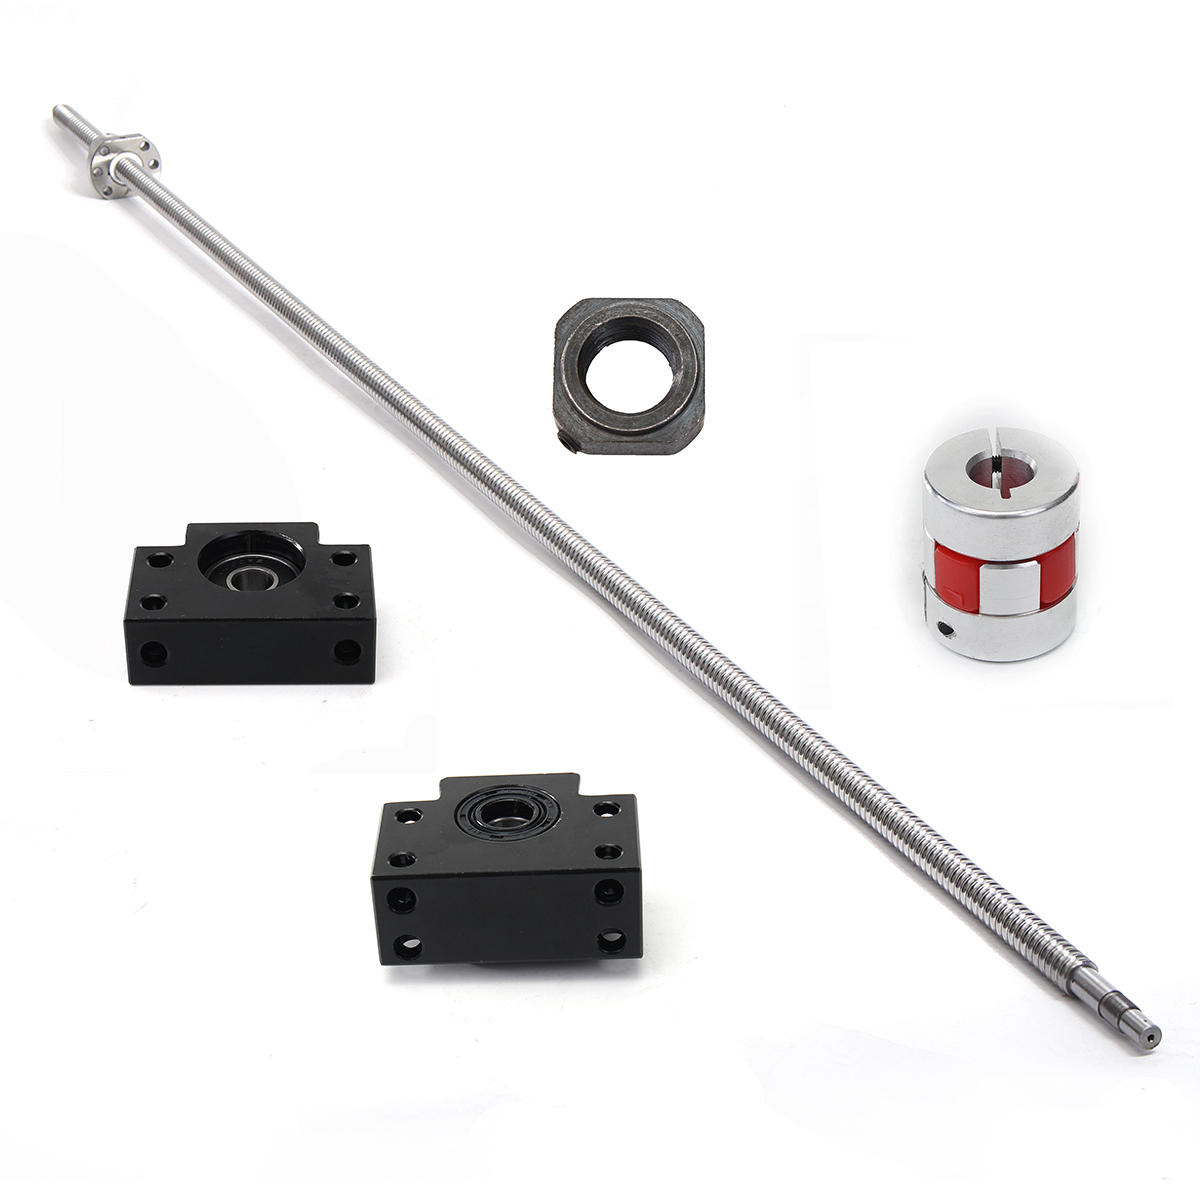 RM1605 1500mm Ball Screw with BK12 BF12 Ball Screw End Supports and Coupler Set